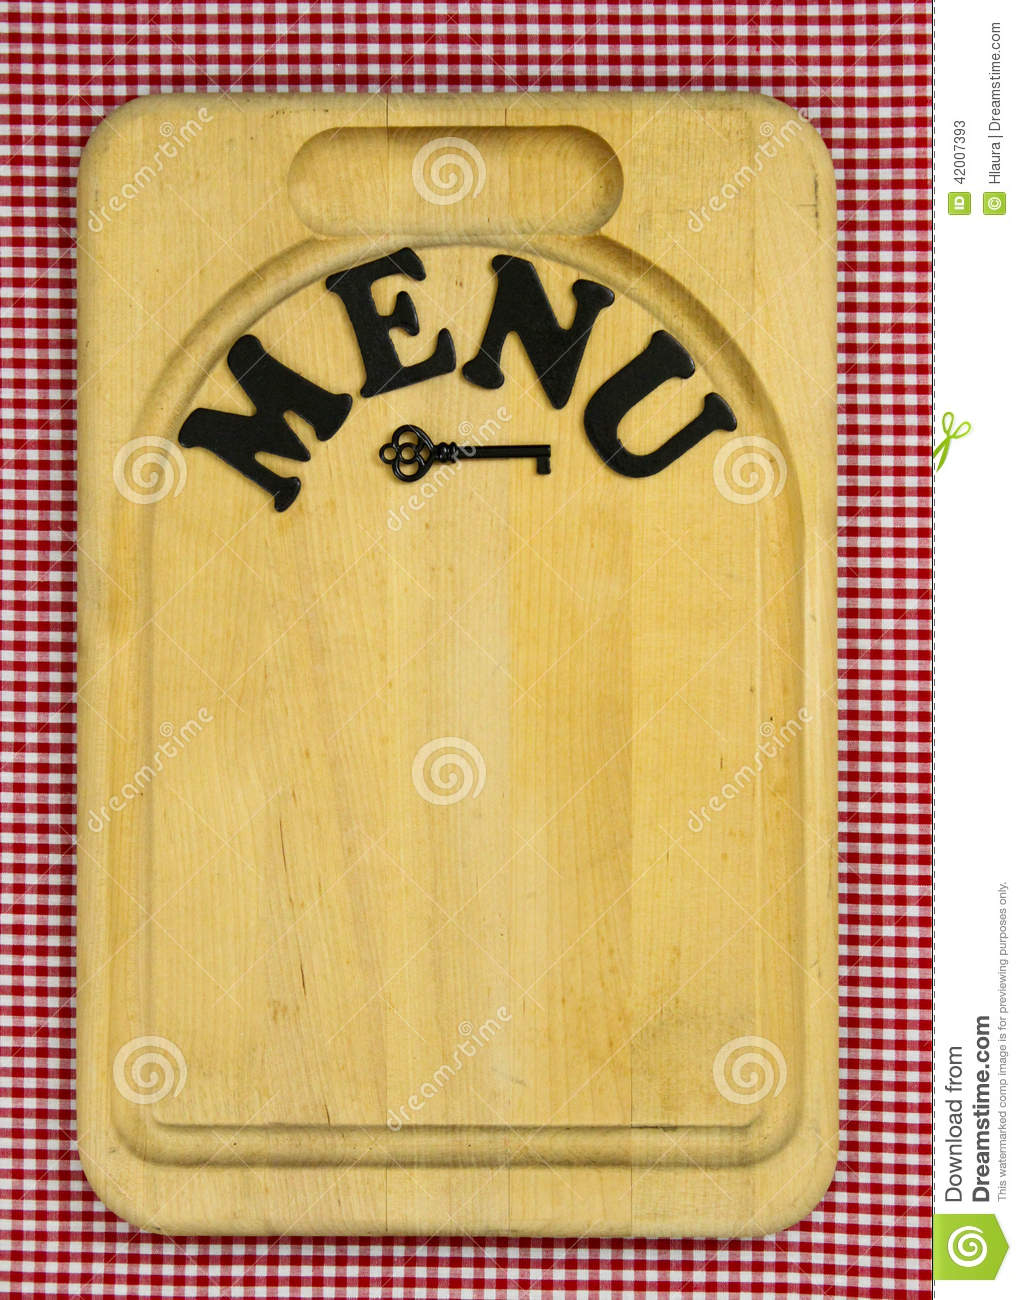 MENU Sign On Wood Cutting Board With Red Checkered ...